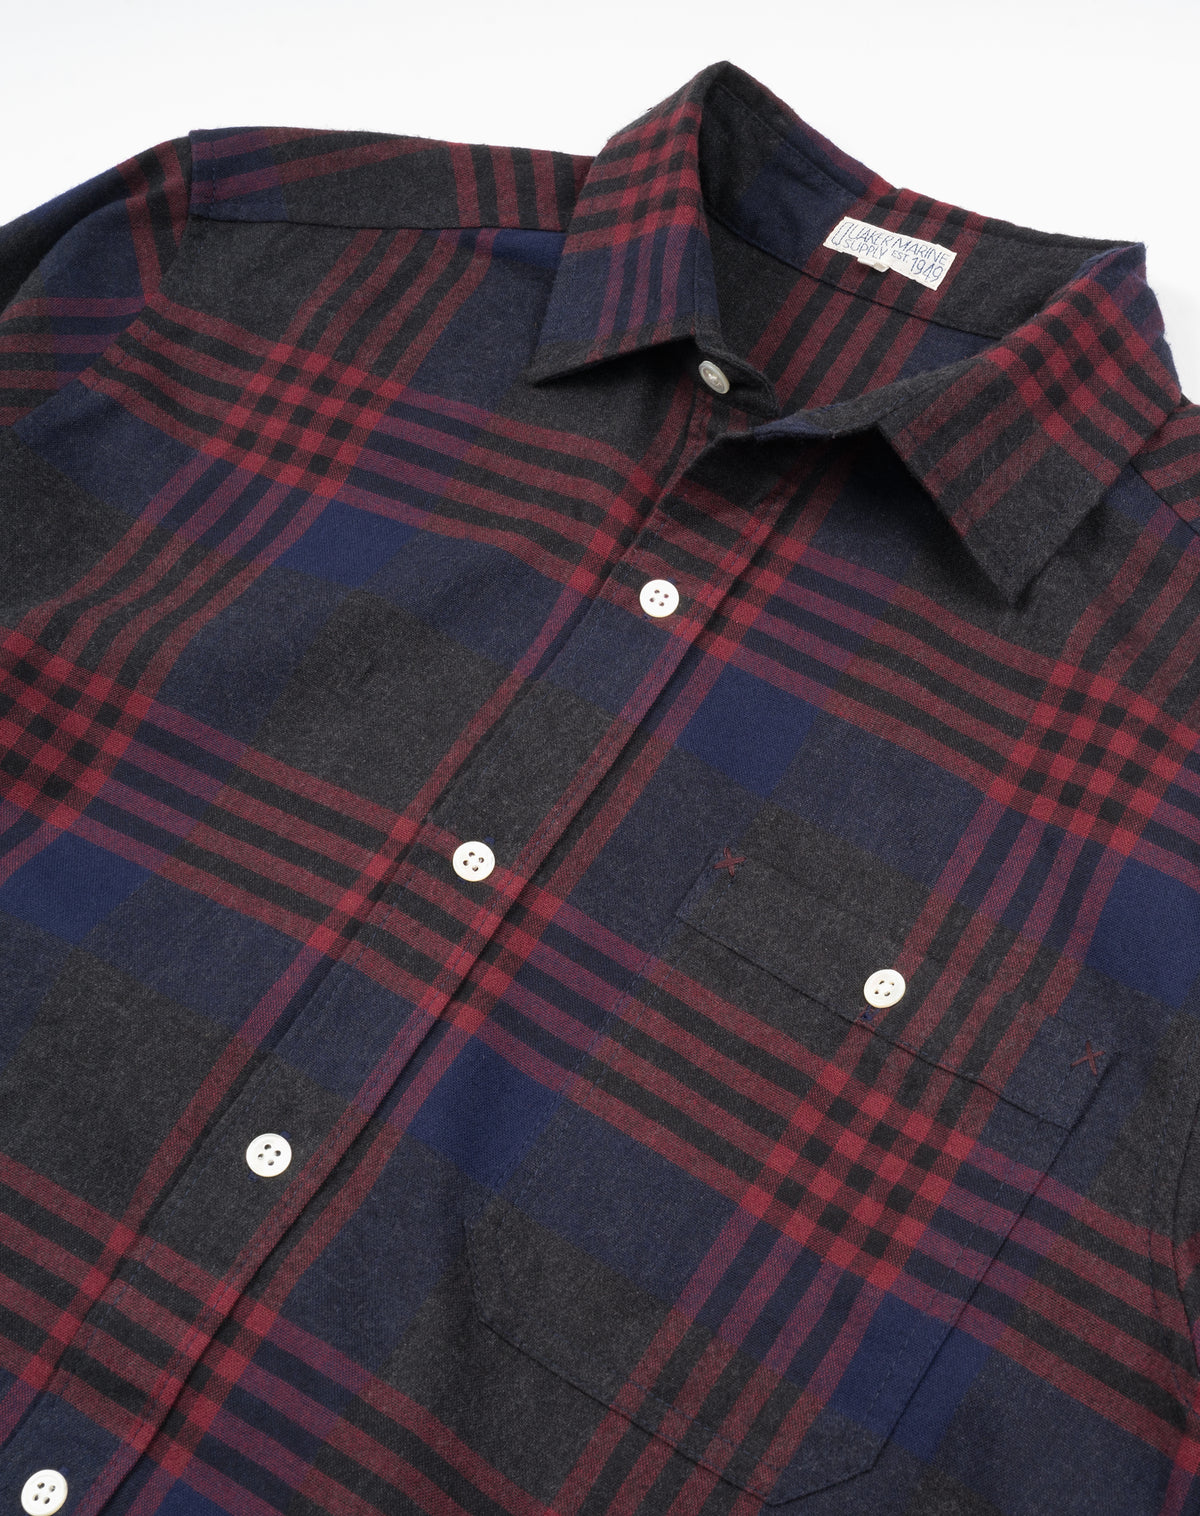 Bangor Flannel in Ink/Heather Burgundy